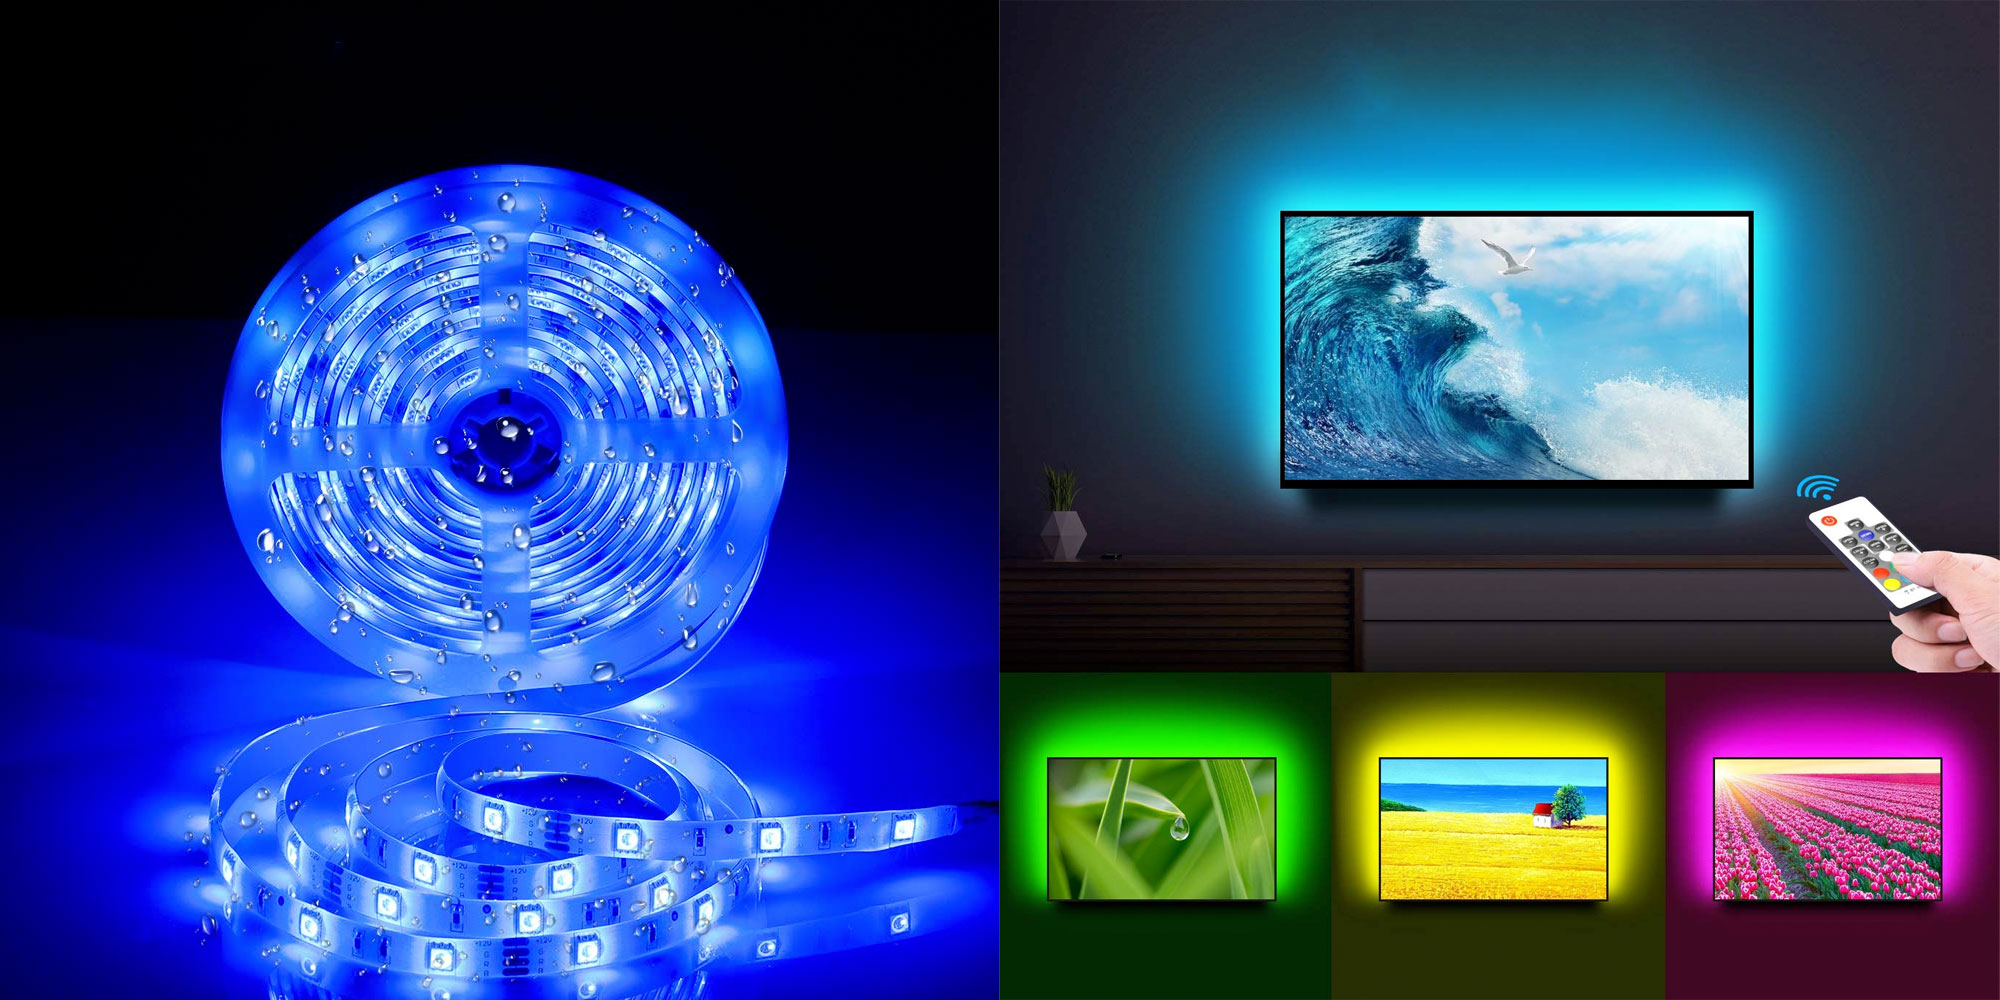 Led Light Strips Rgb For Just 21 You Can Add This Smart Rgb Led Light Strip To Any Room